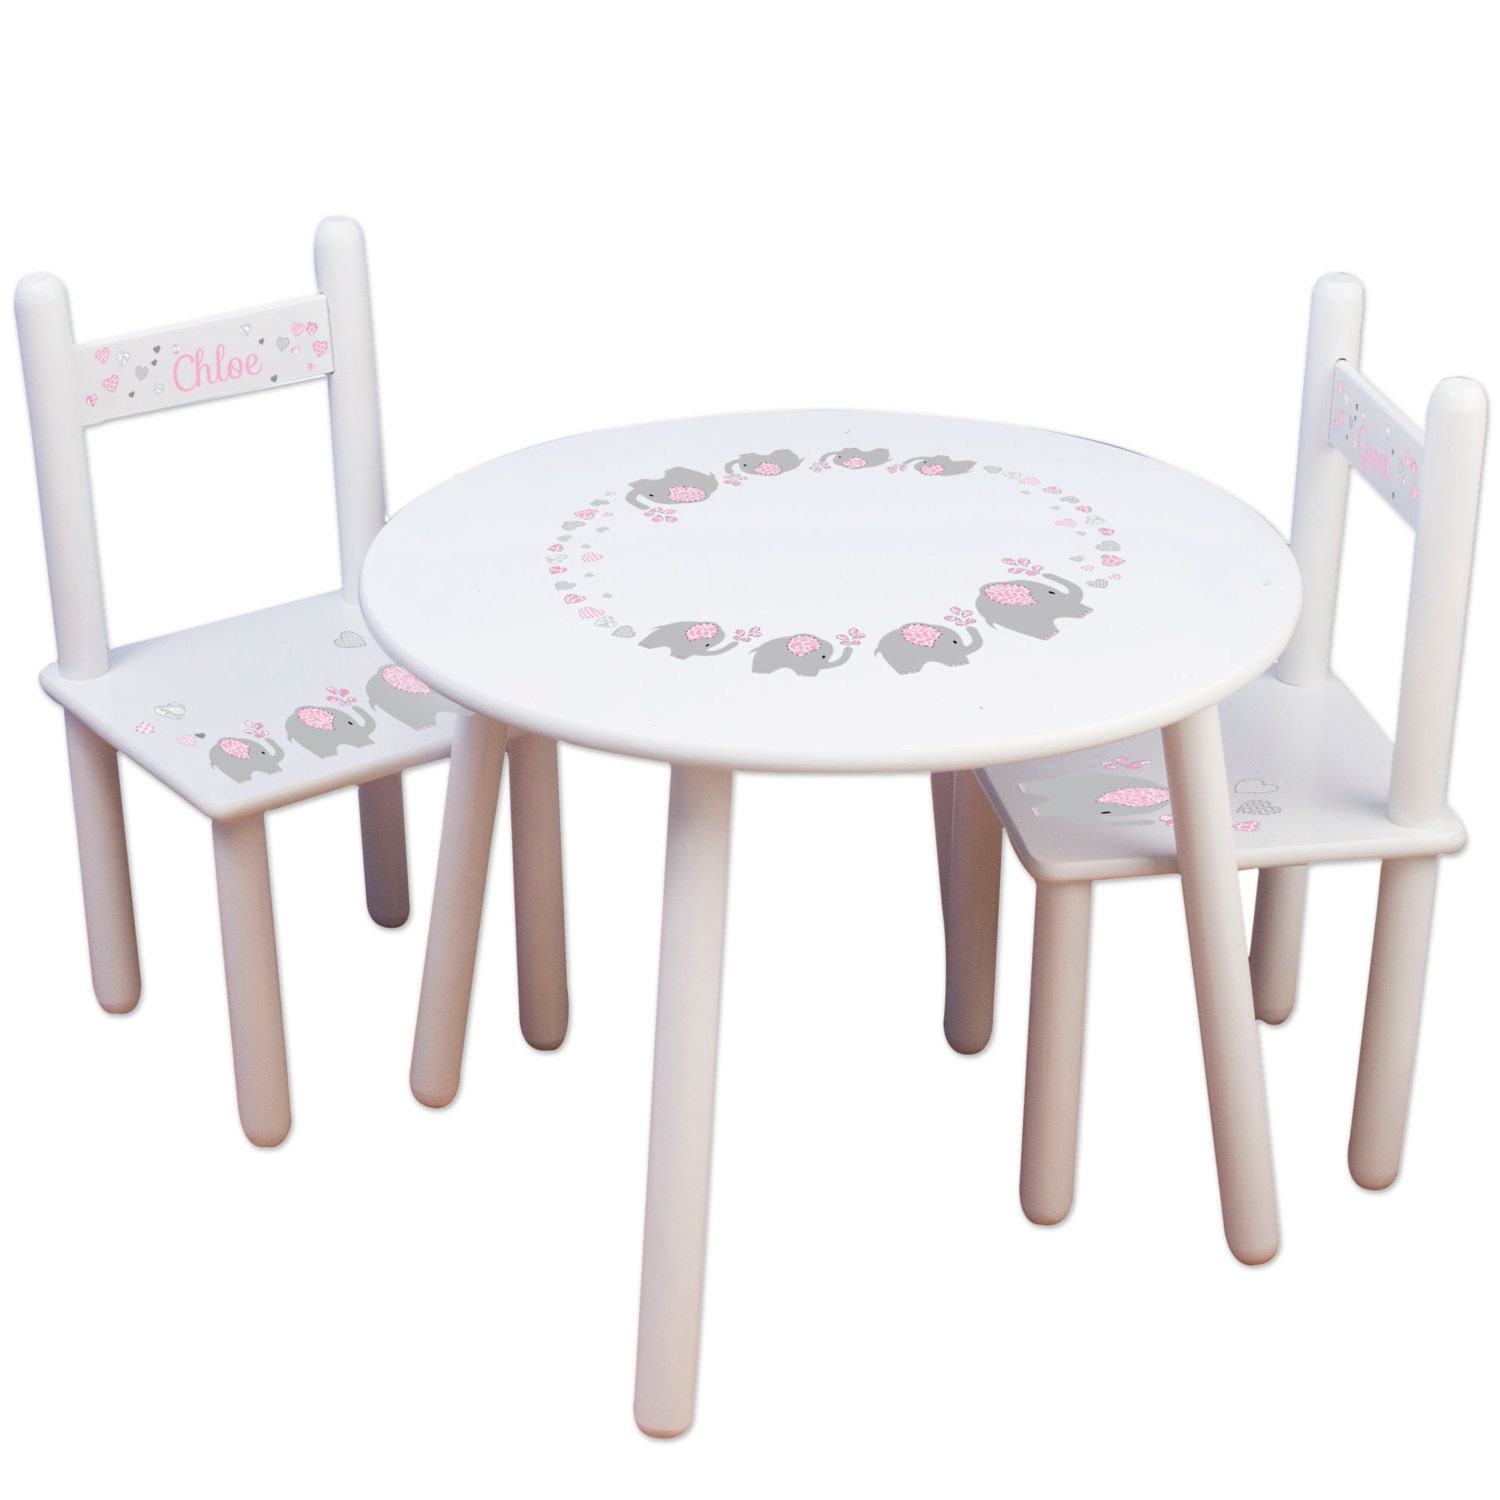 chair set with table and colorful piece folding l chairs larger kids at wood decoration view